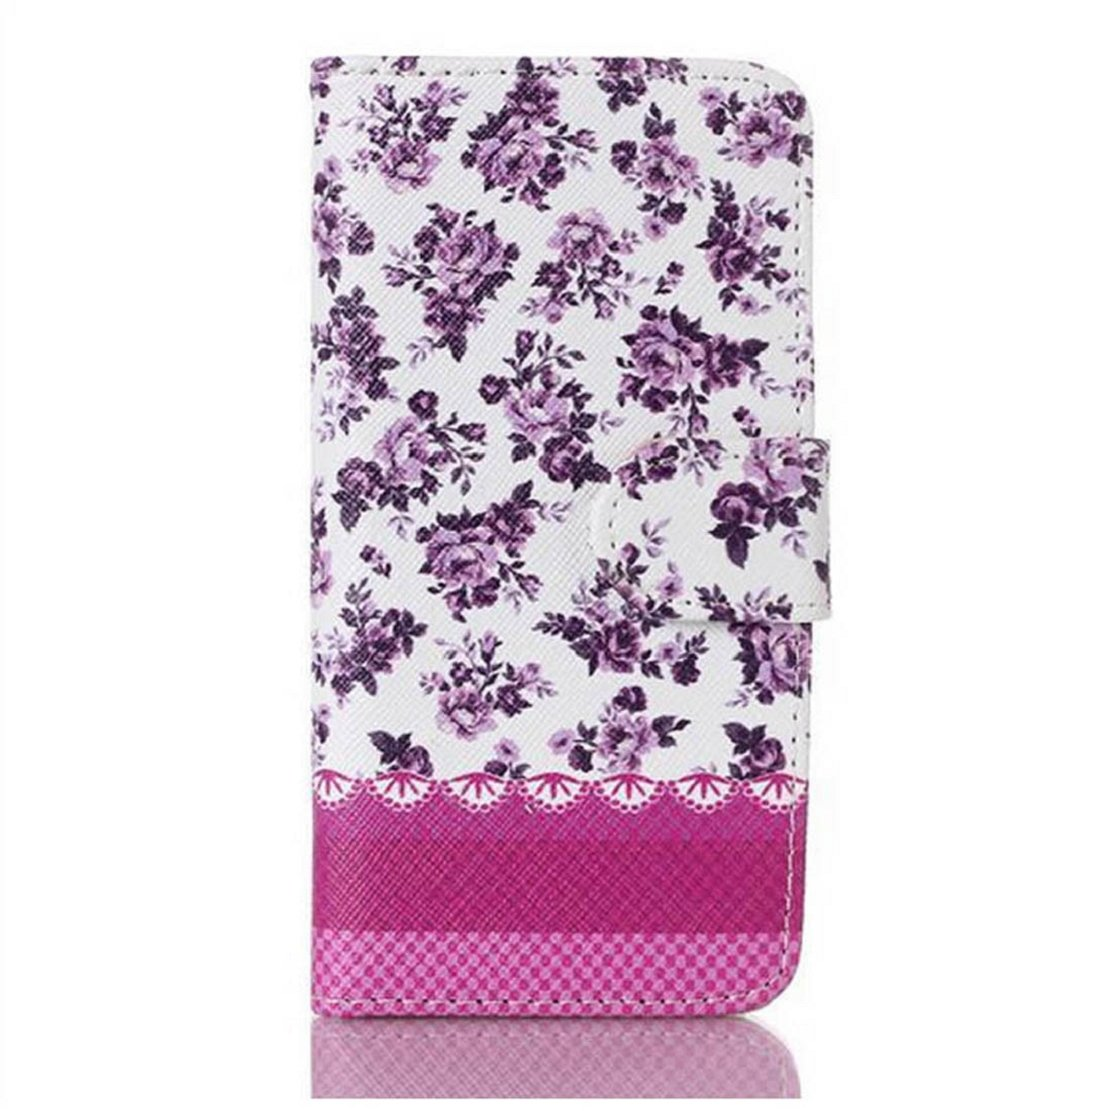 Floral Jacquard Stand Wallet Leather Cover Case For iPhone 5 5G 5S (Purple)